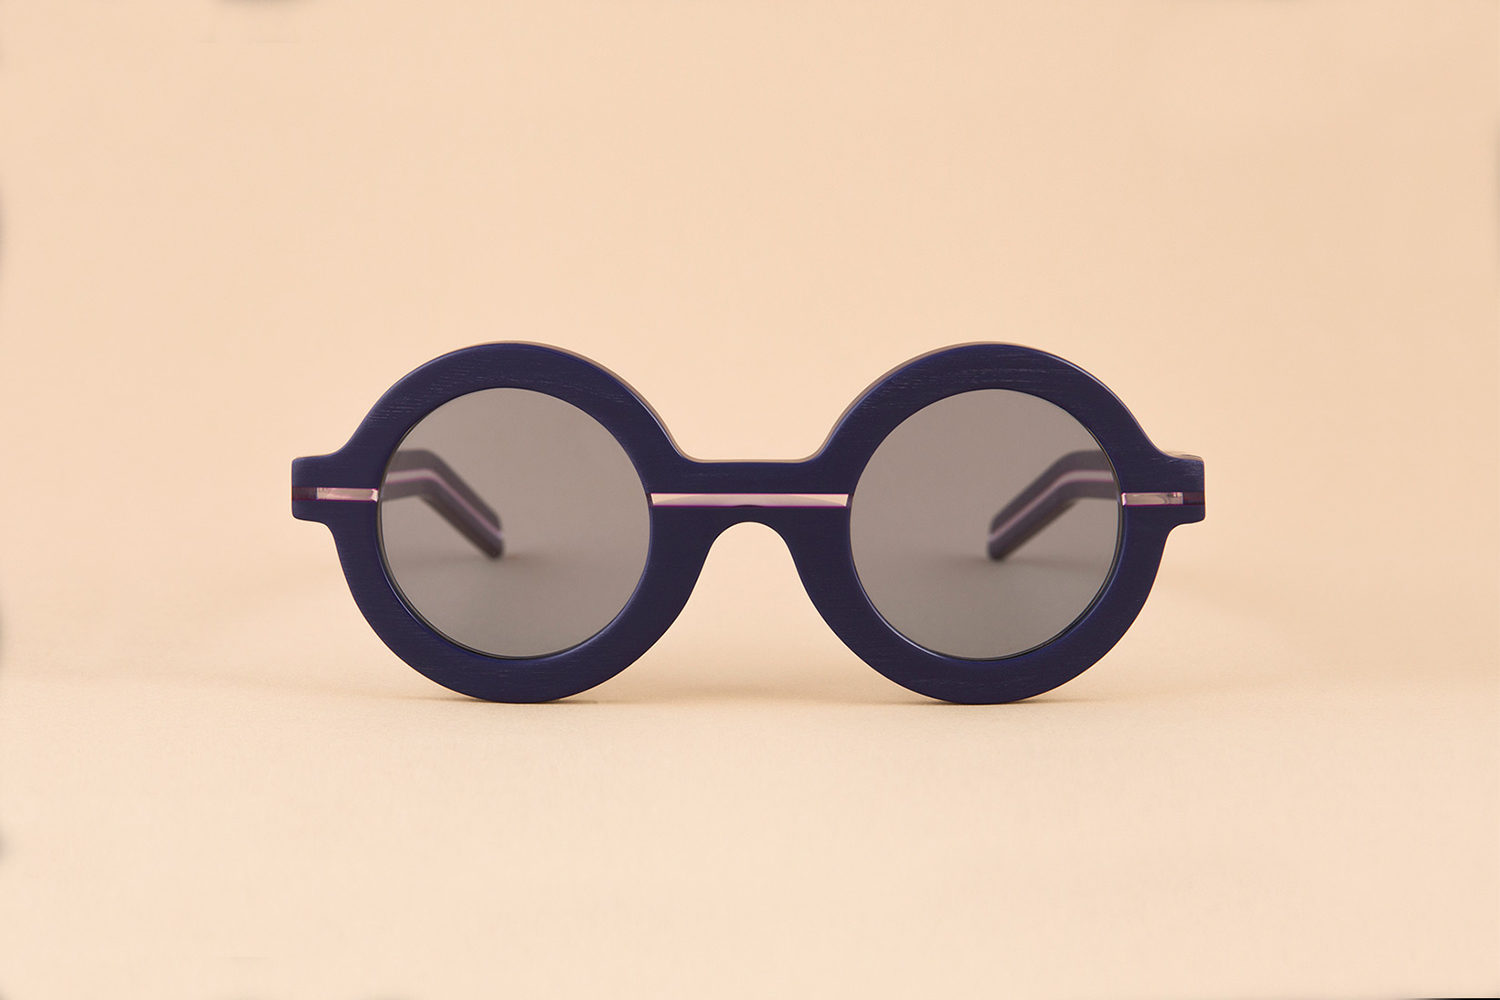 REVEL PARIS - MAISON RABIH KAYROUZ Small Full - Navy